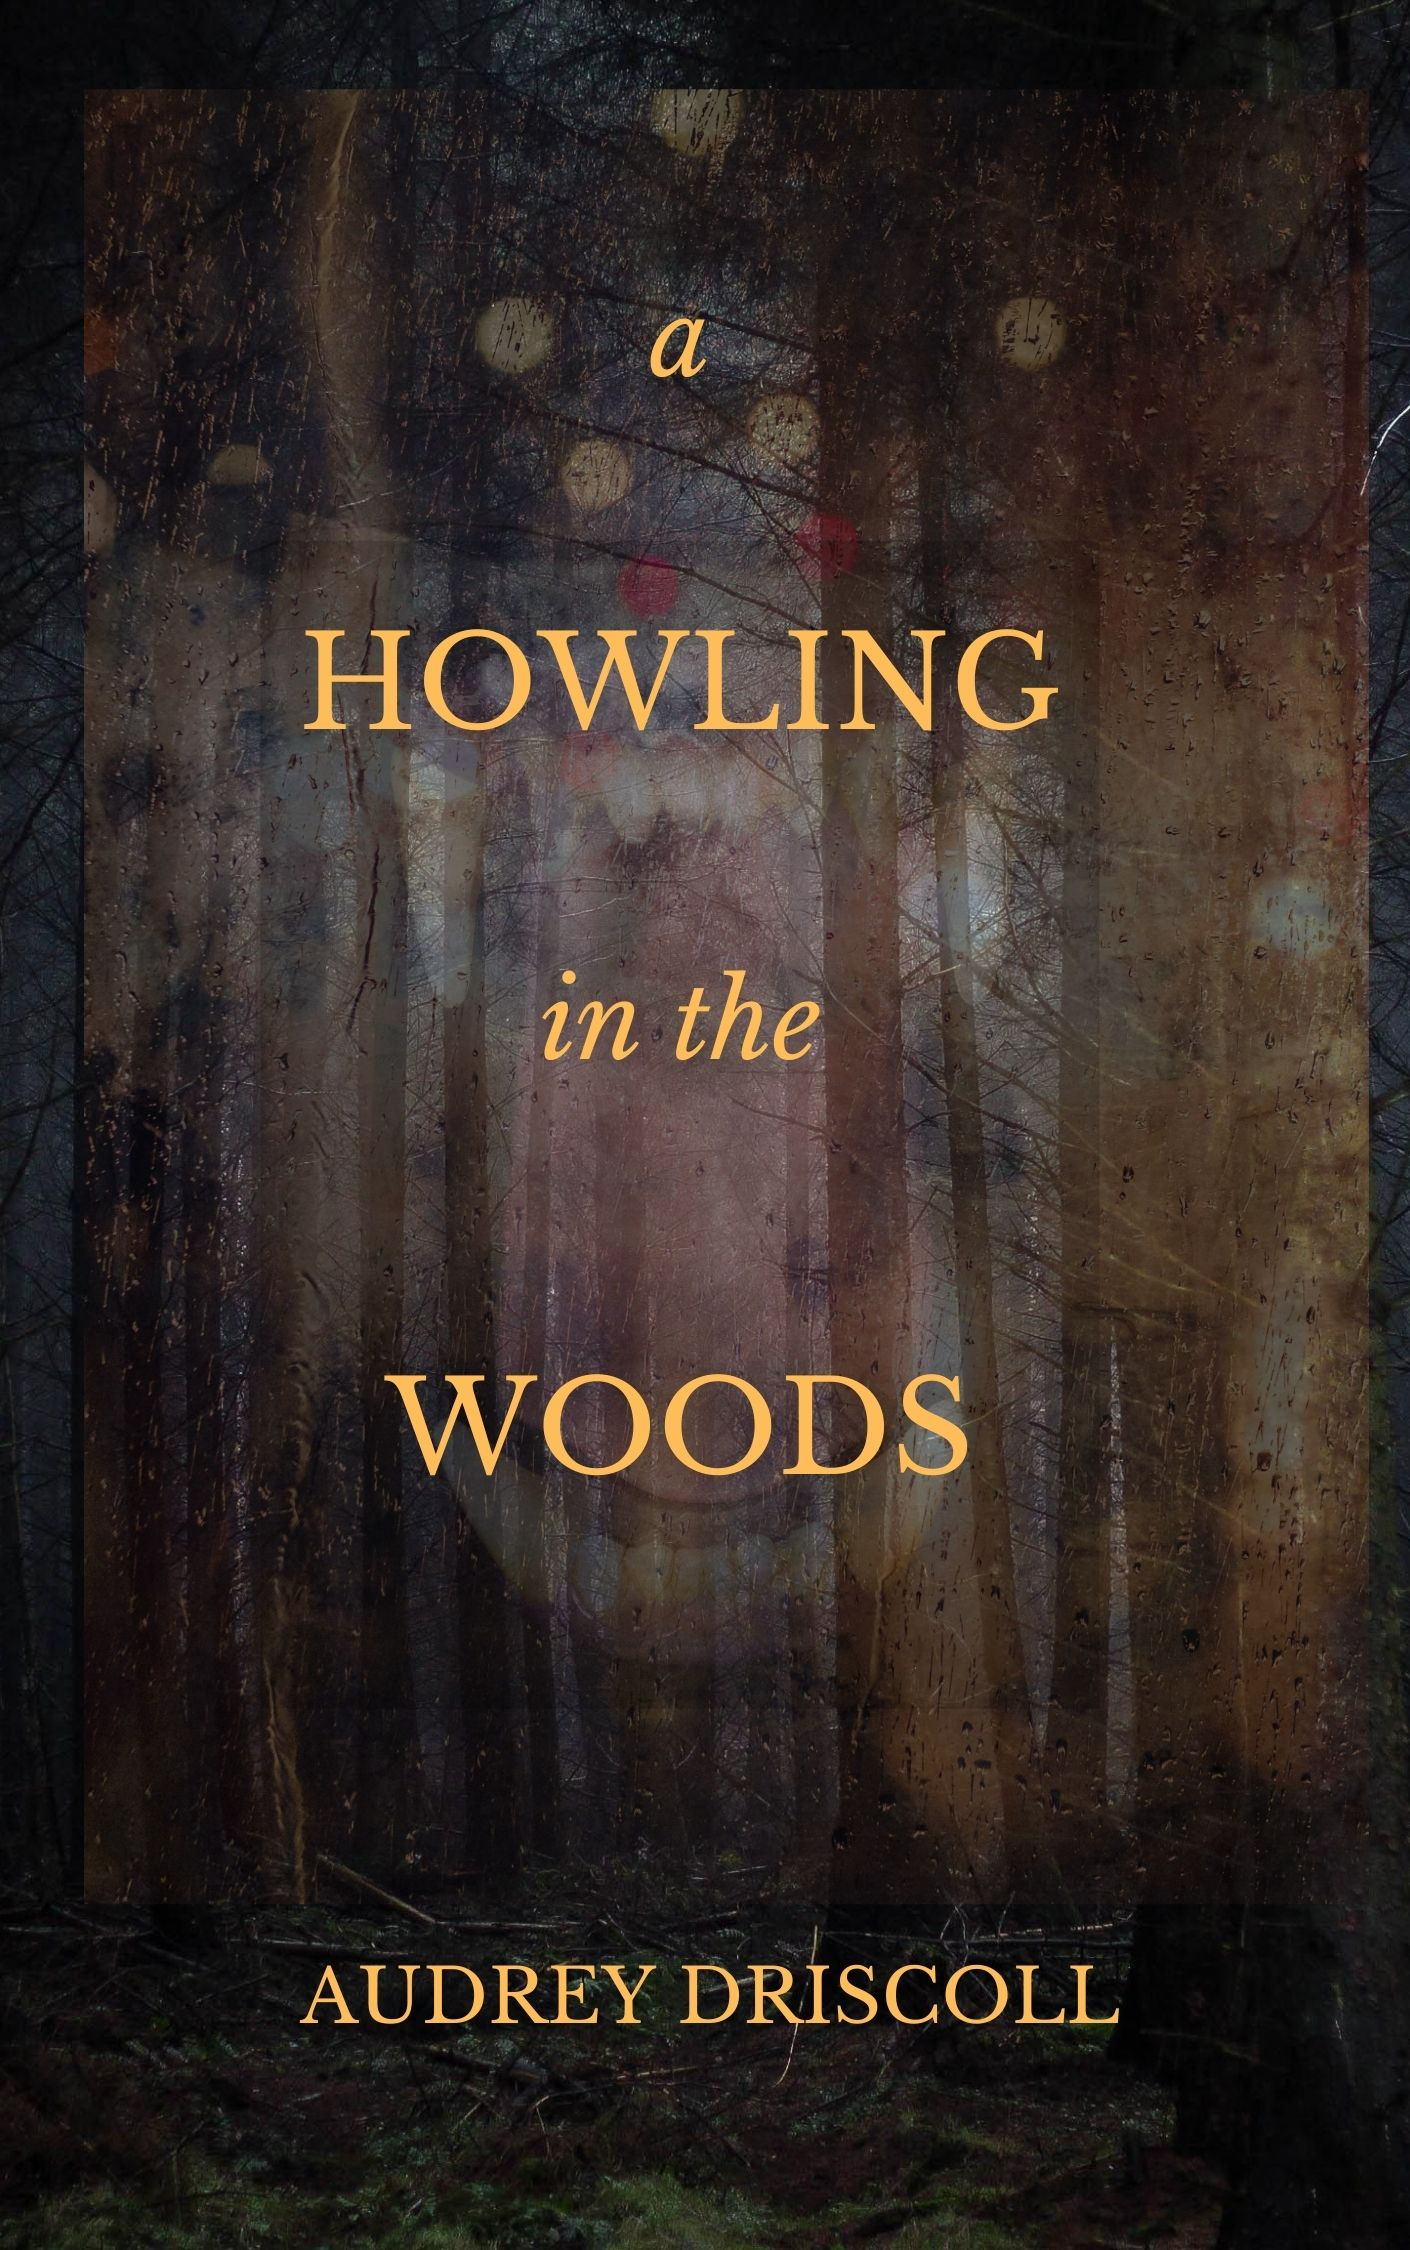 Image for A Howling in the Woods story